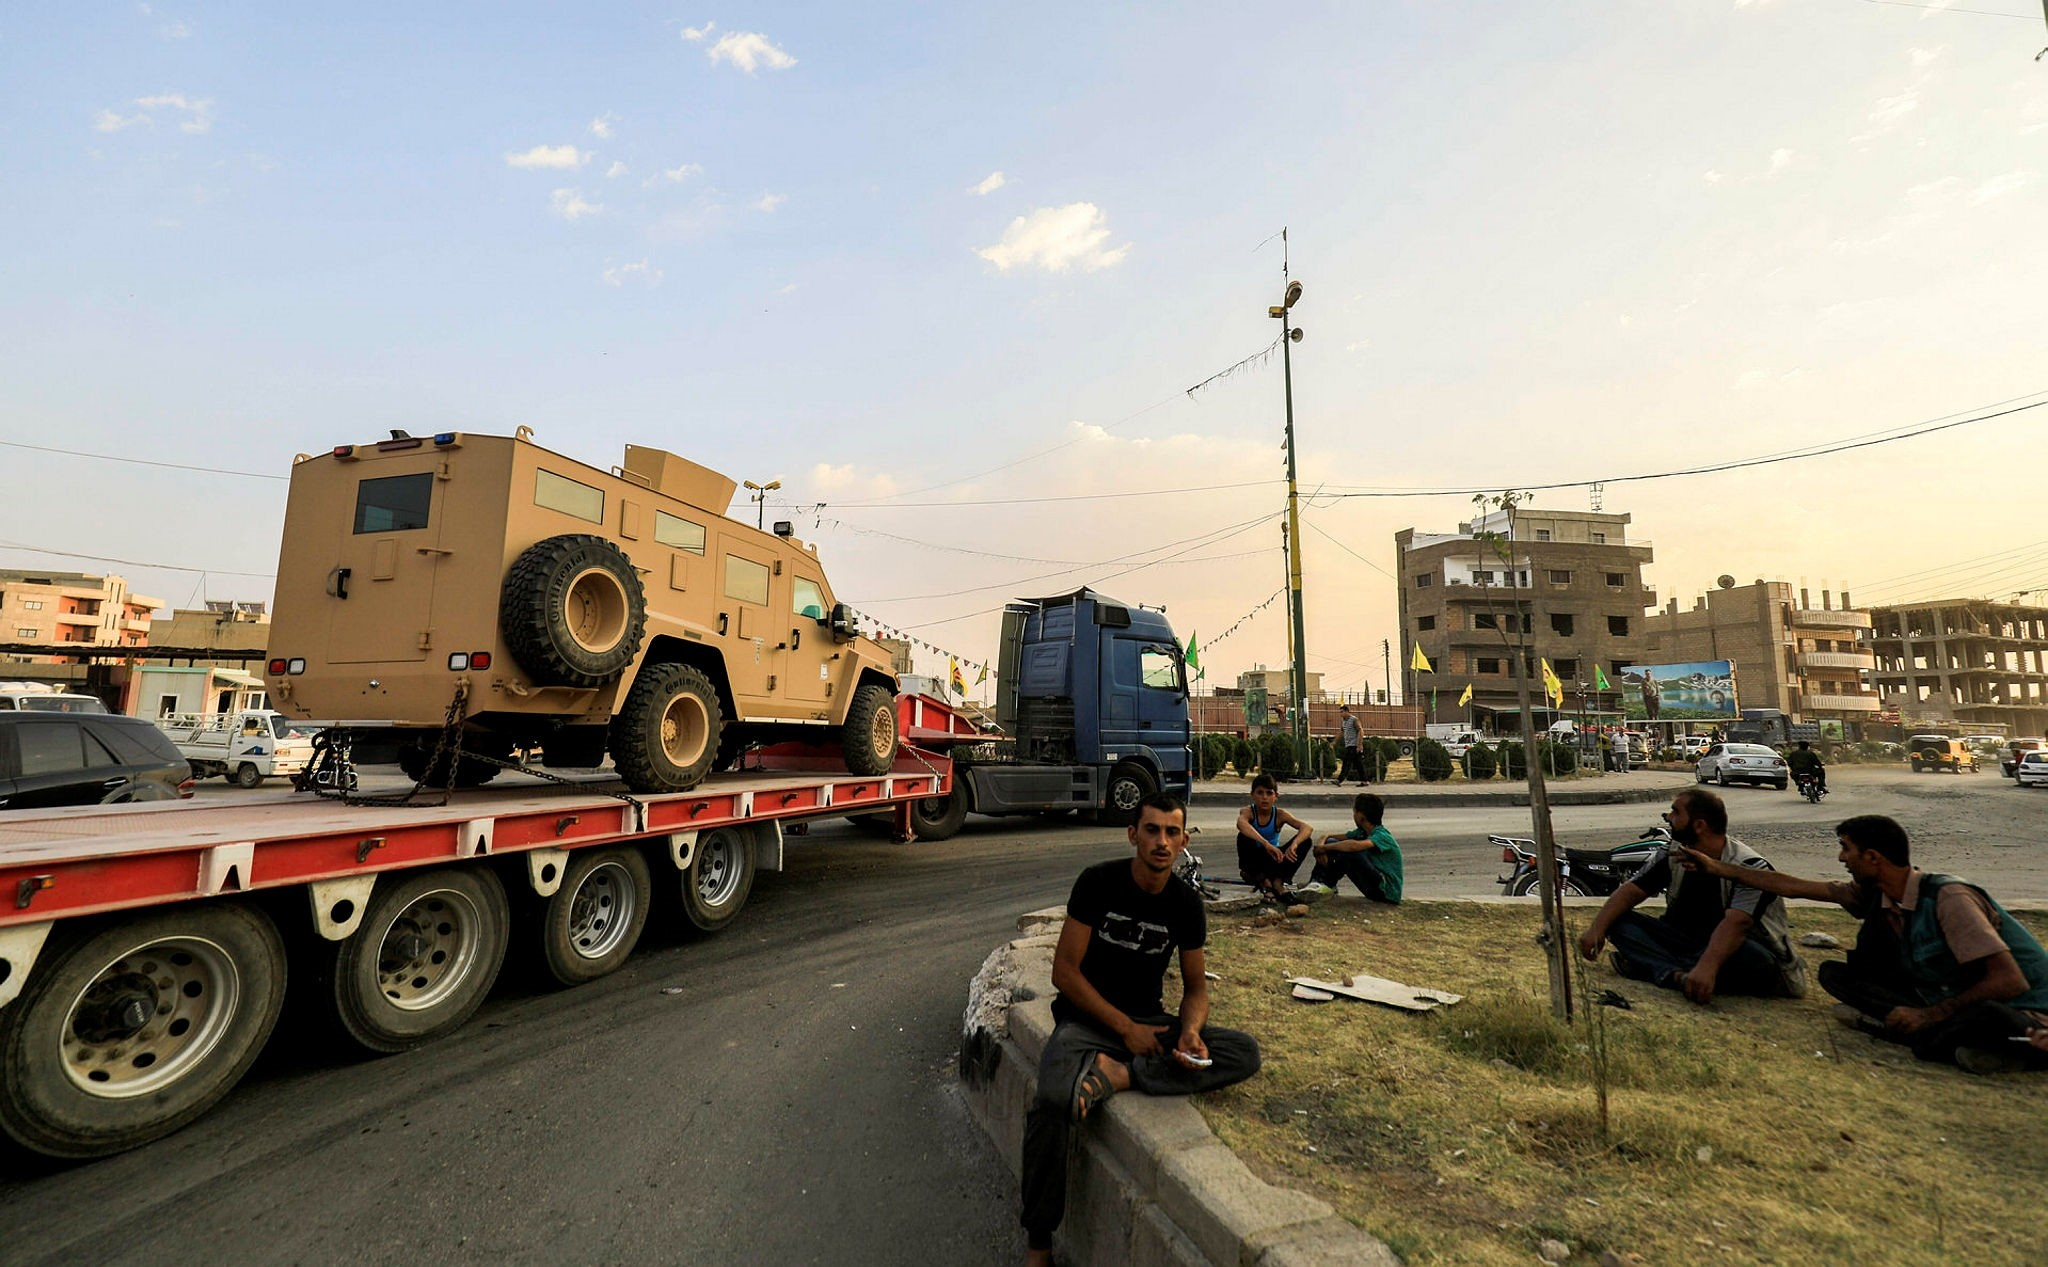 Men watch as a military convoy carrying US-made armored vehicles, bulldozers, and arms headed for YPG terrorists in Raqqa, passes through the northeastern Syrian city of Qamishli on September 19, 2017. (AFP file photo)